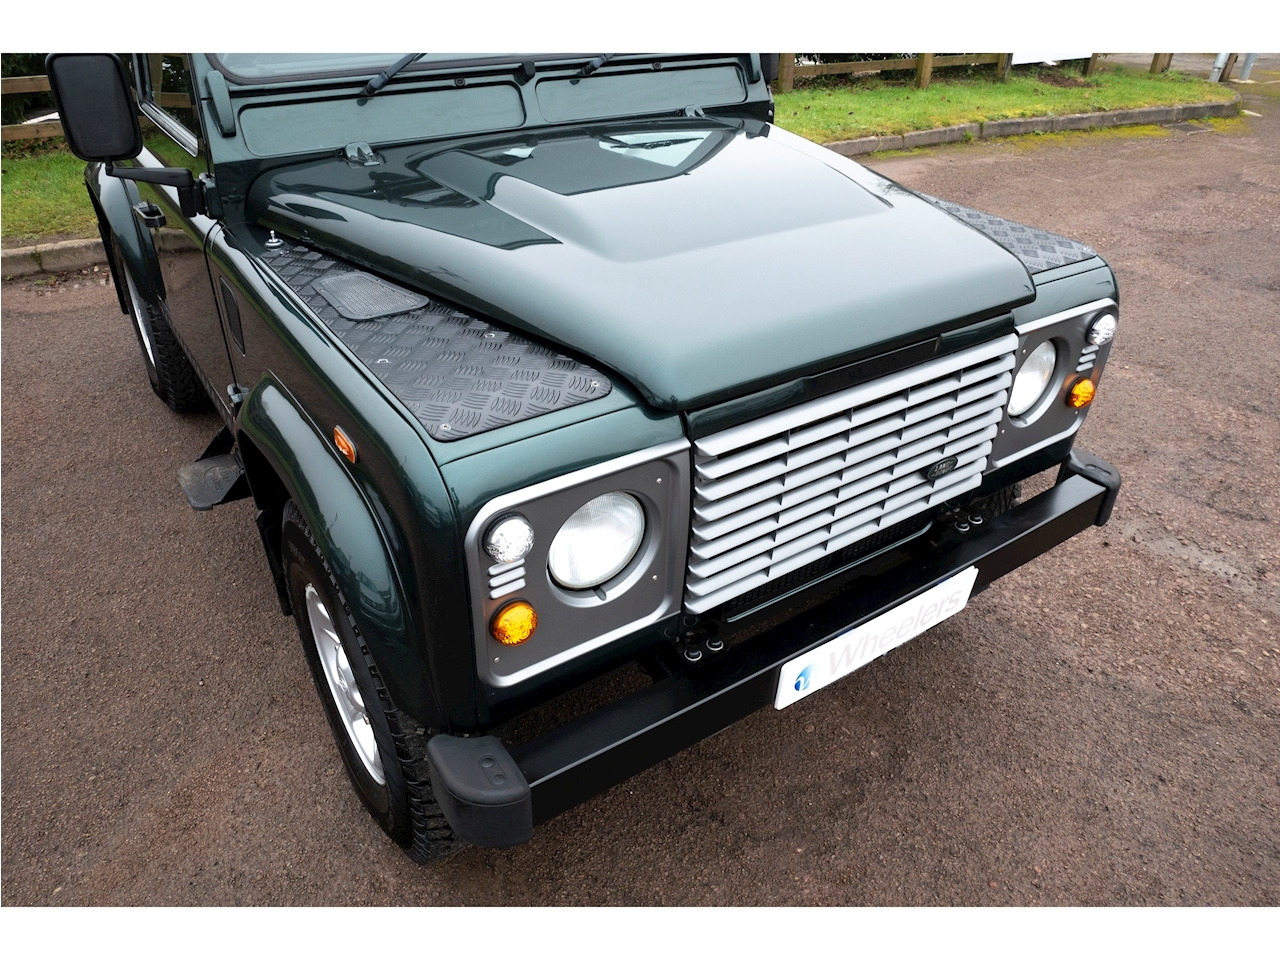 Land Rover Defender 90 County Hard Top Light 4X4 Utility 2.4 Manual Diesel